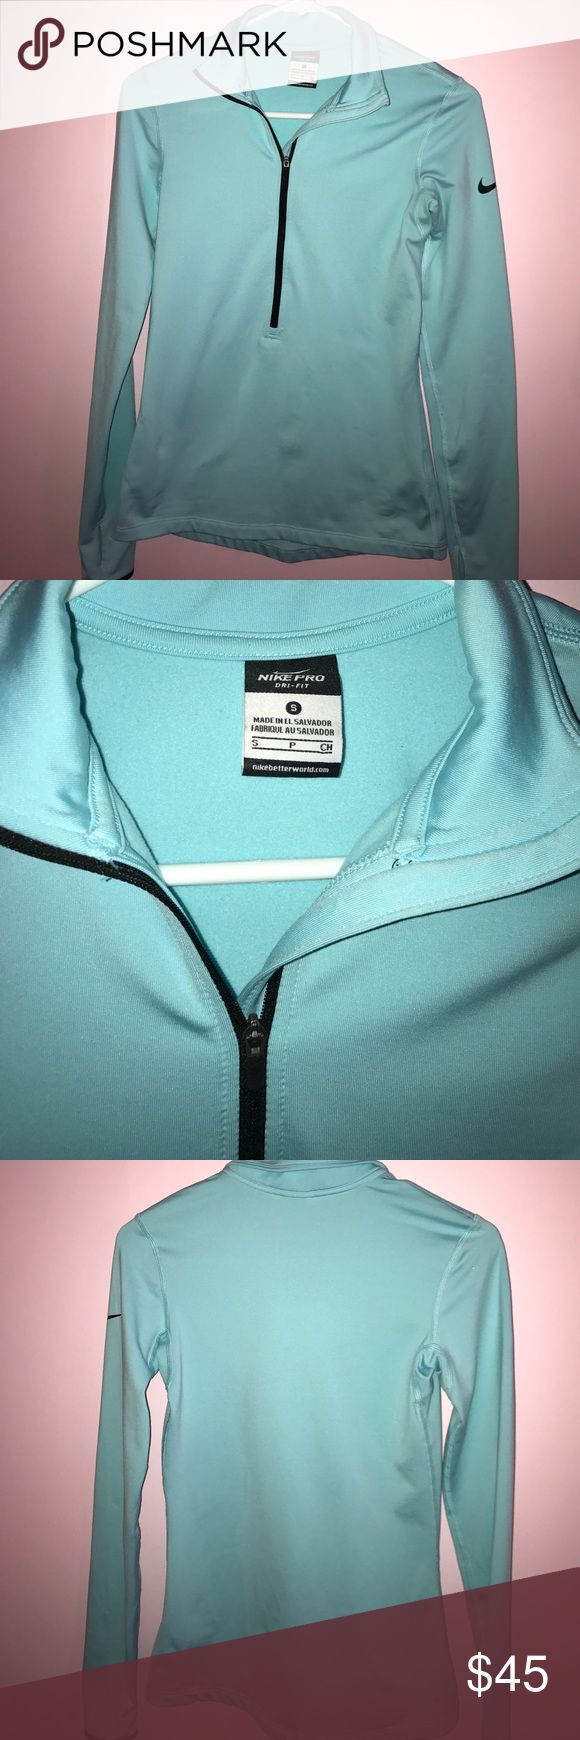 Nike Pro Quarter Zip Brand new without tags ...gorgeous Tiffany blue color this is a tight fitting top perfect for working out or looking cute ...never worn it is a size small but fits like an extra small Nike Tops Tees - Long Sleeve